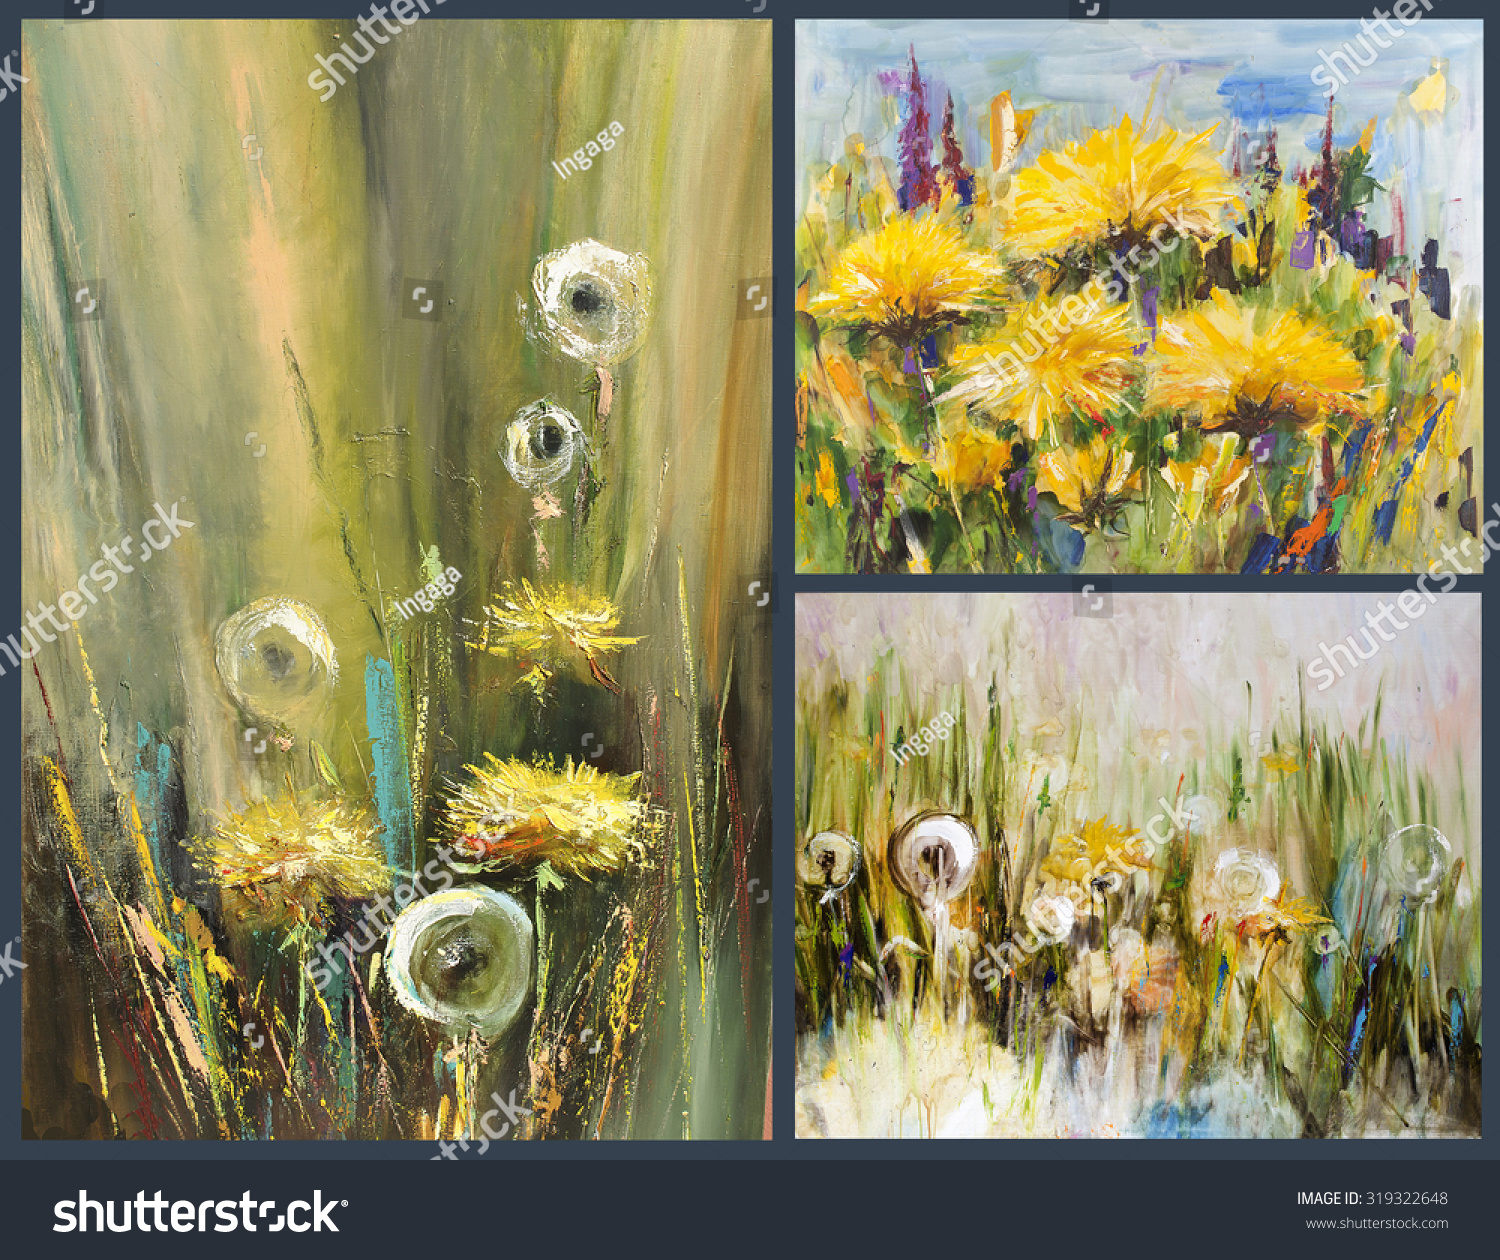 Dandelions Different Perspectives Big Yellow Flowers Painting Pictorial Art